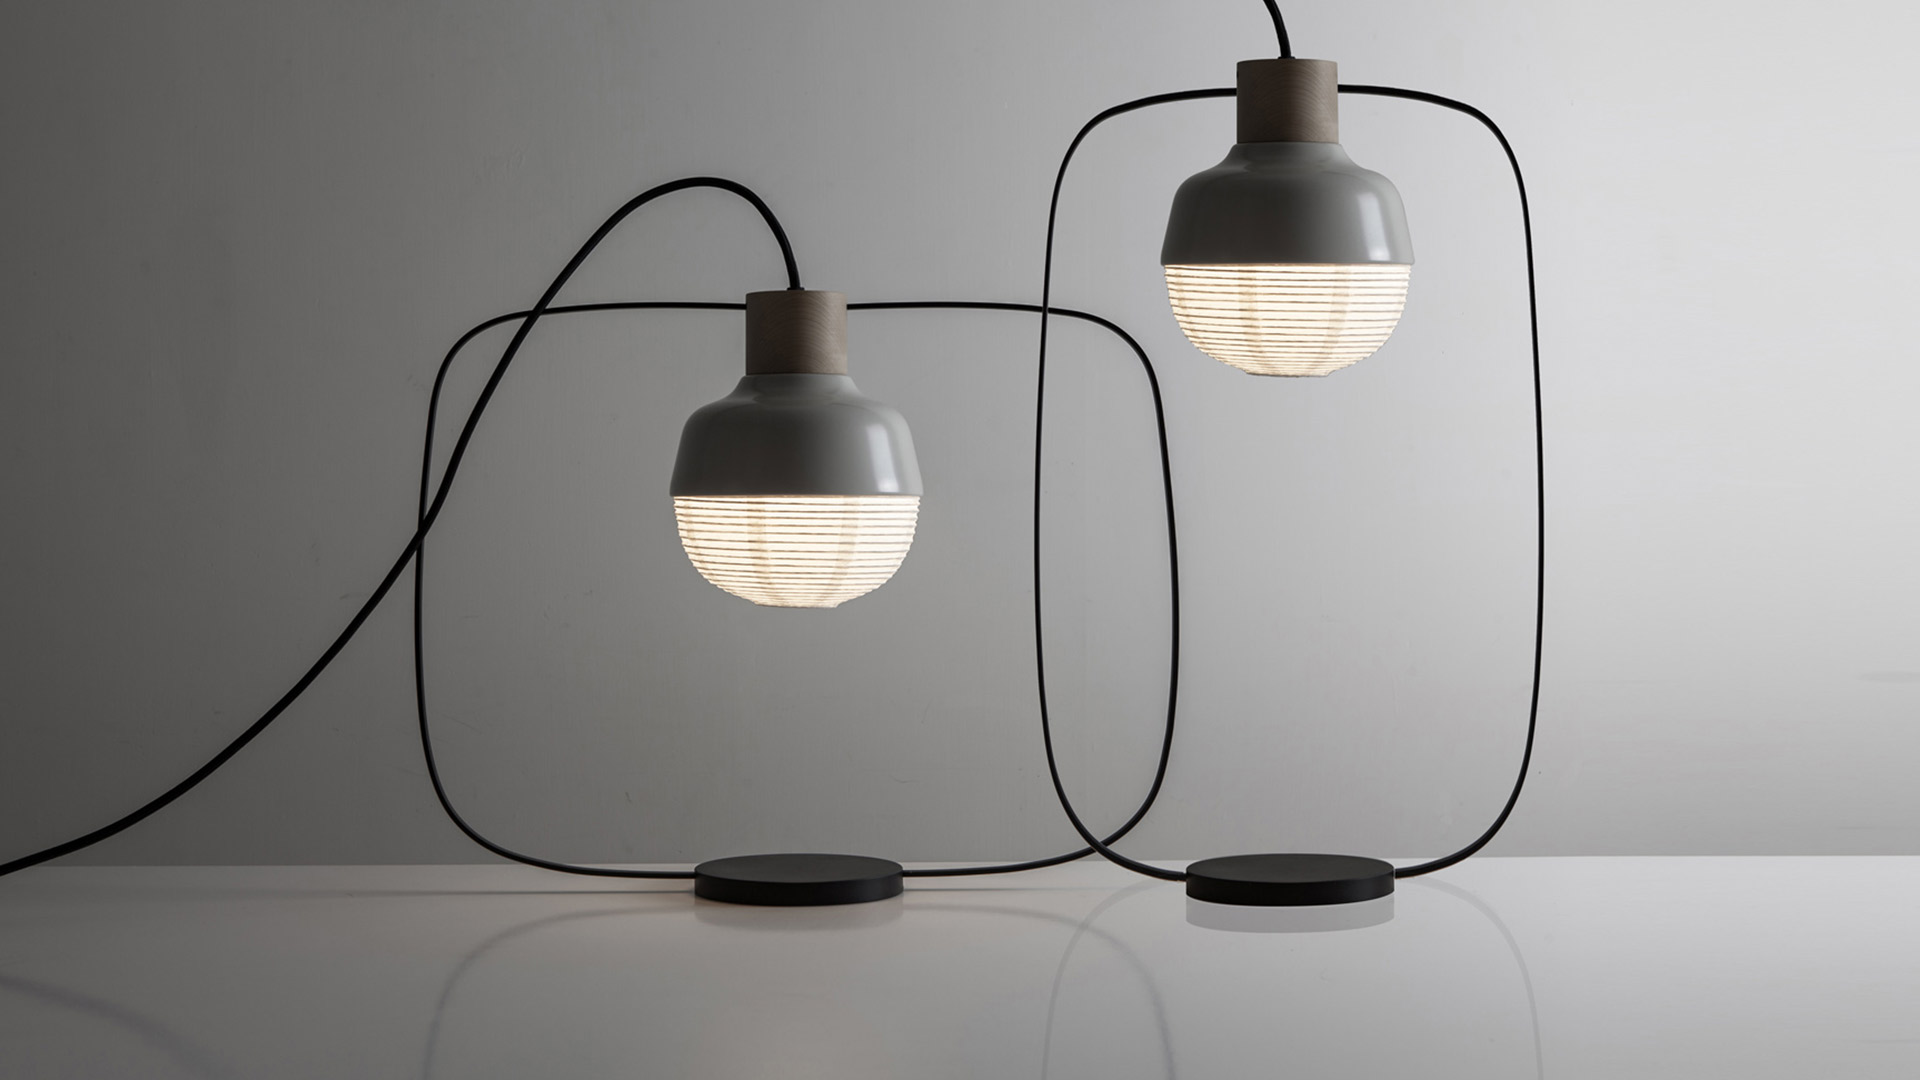 The 'New Old lights from Kimu Design combine fine metal frames and robust metal hoods that house a delicate paper shade.